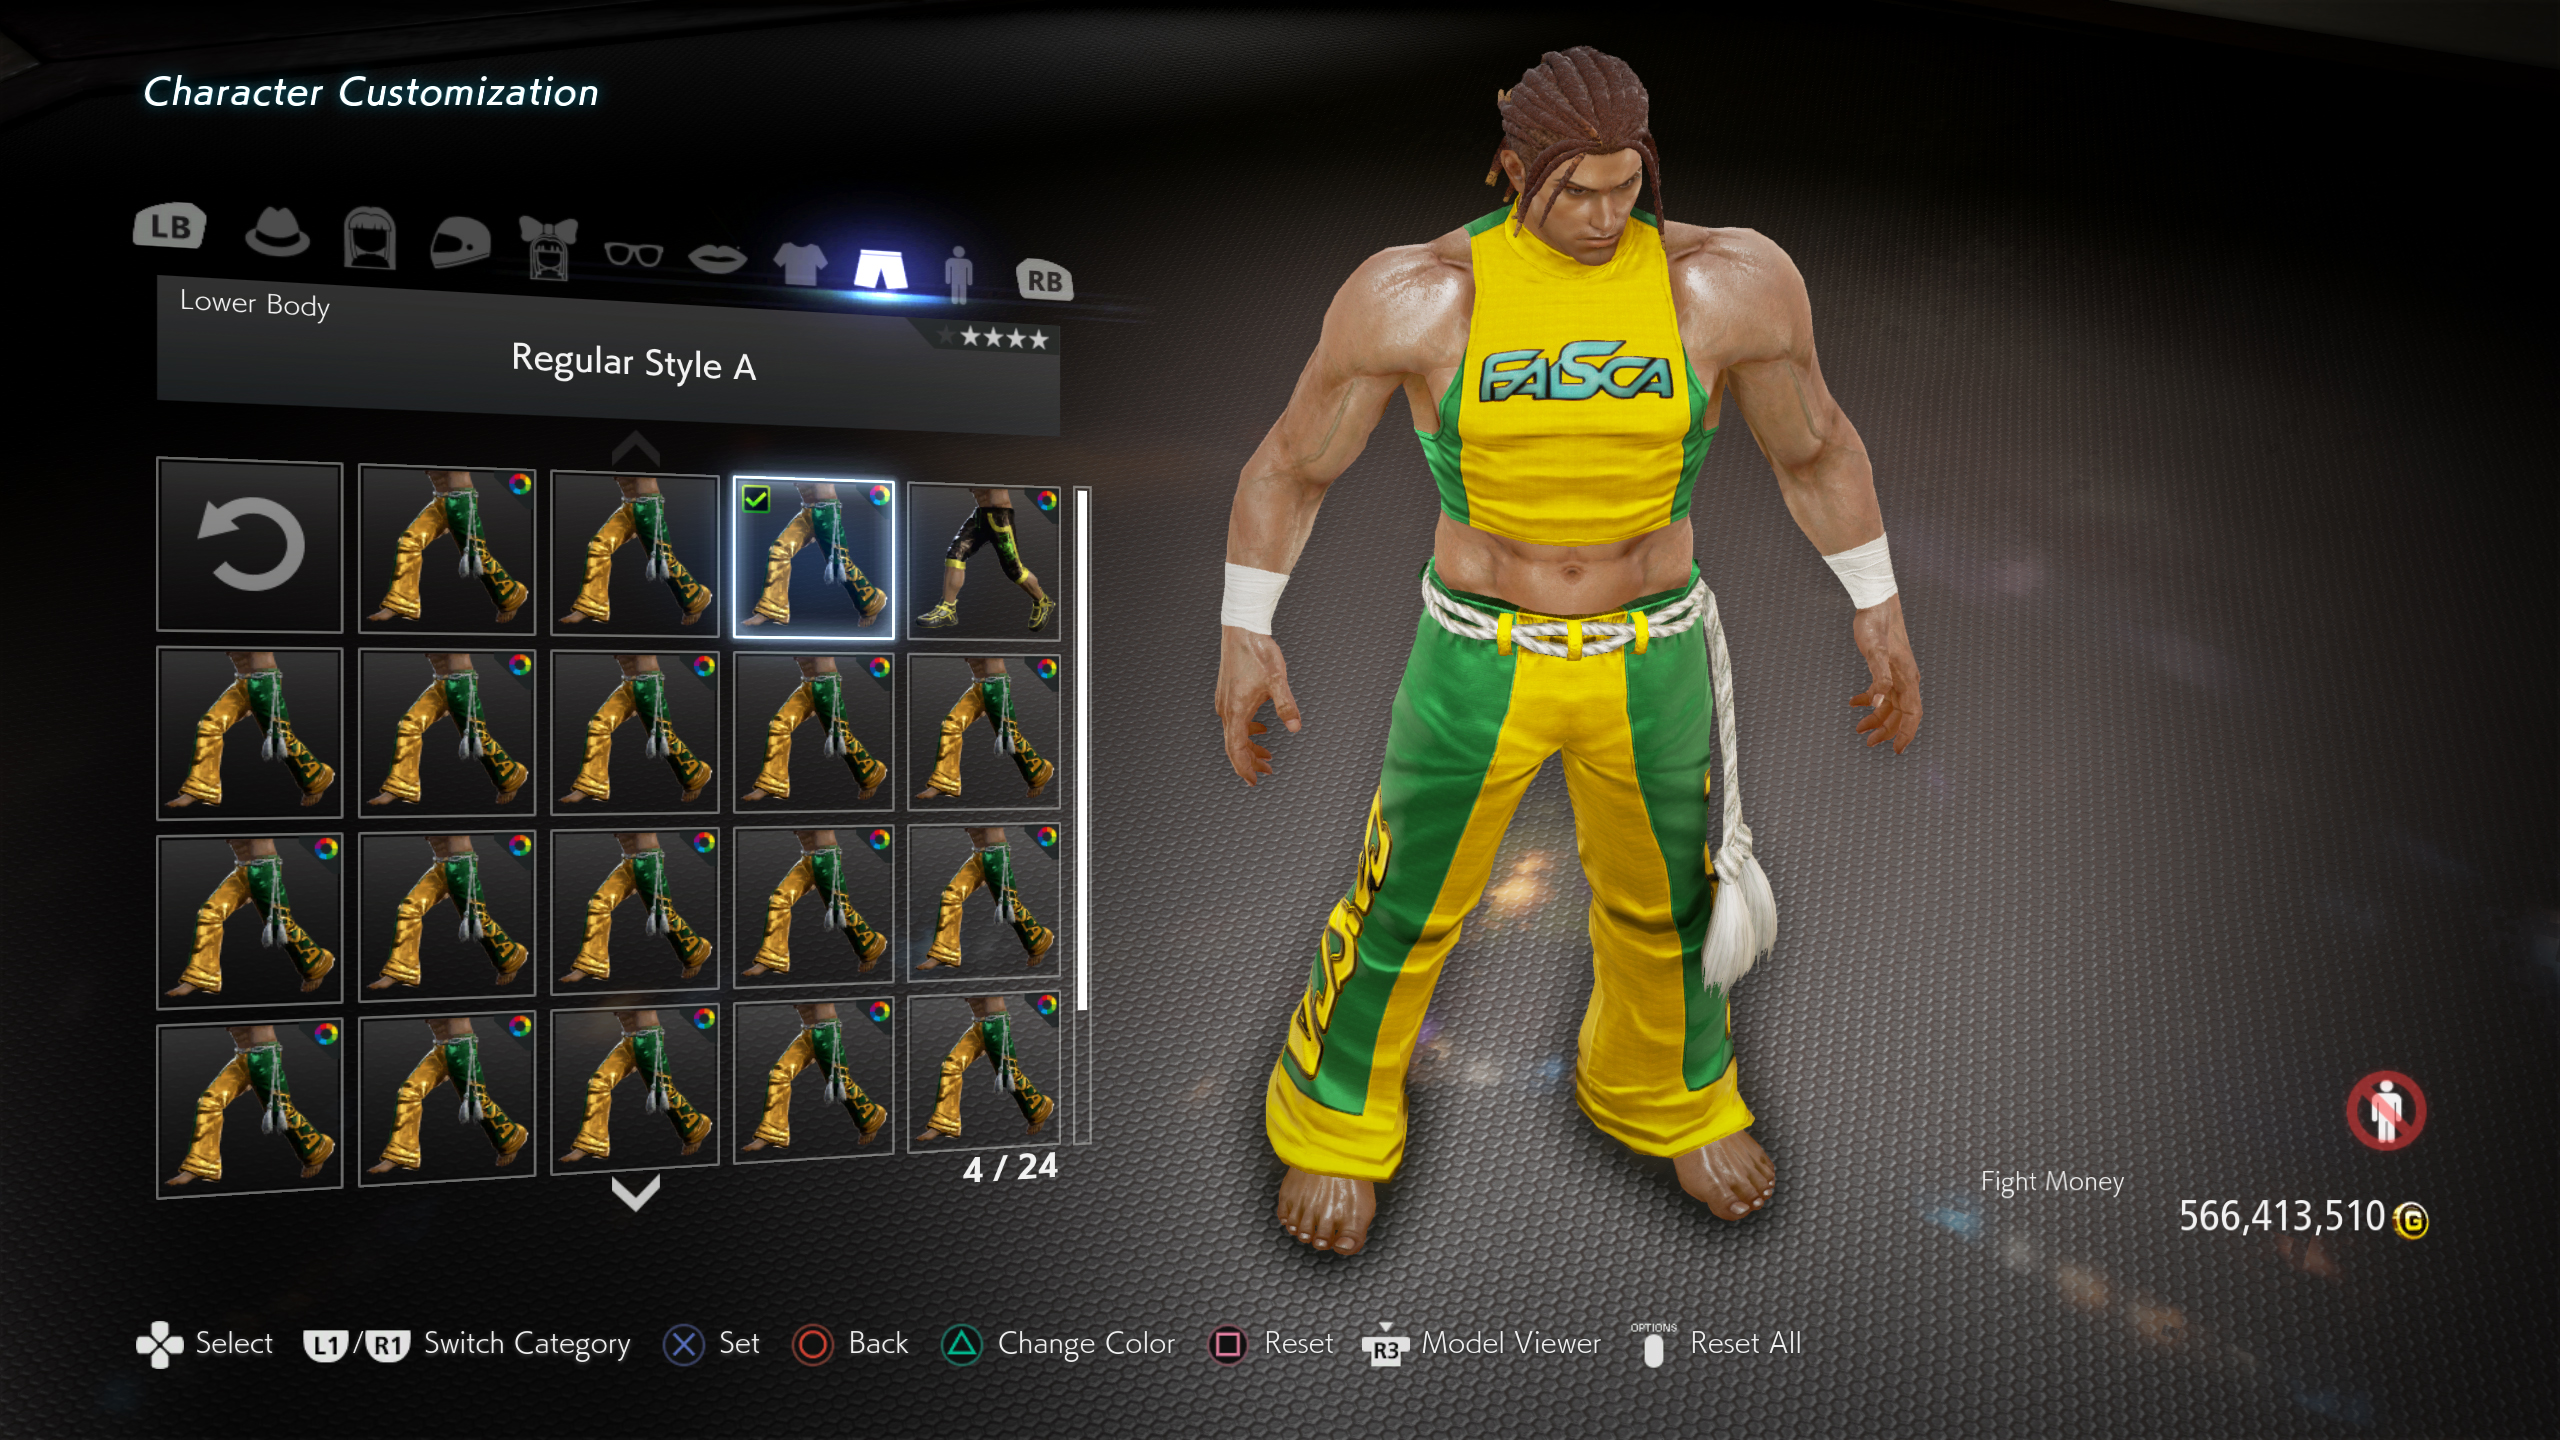 tekken 7 pc legacy costume online eddy gordo 2 1 by godlike99kingz on deviantart tekken 7 pc legacy costume online